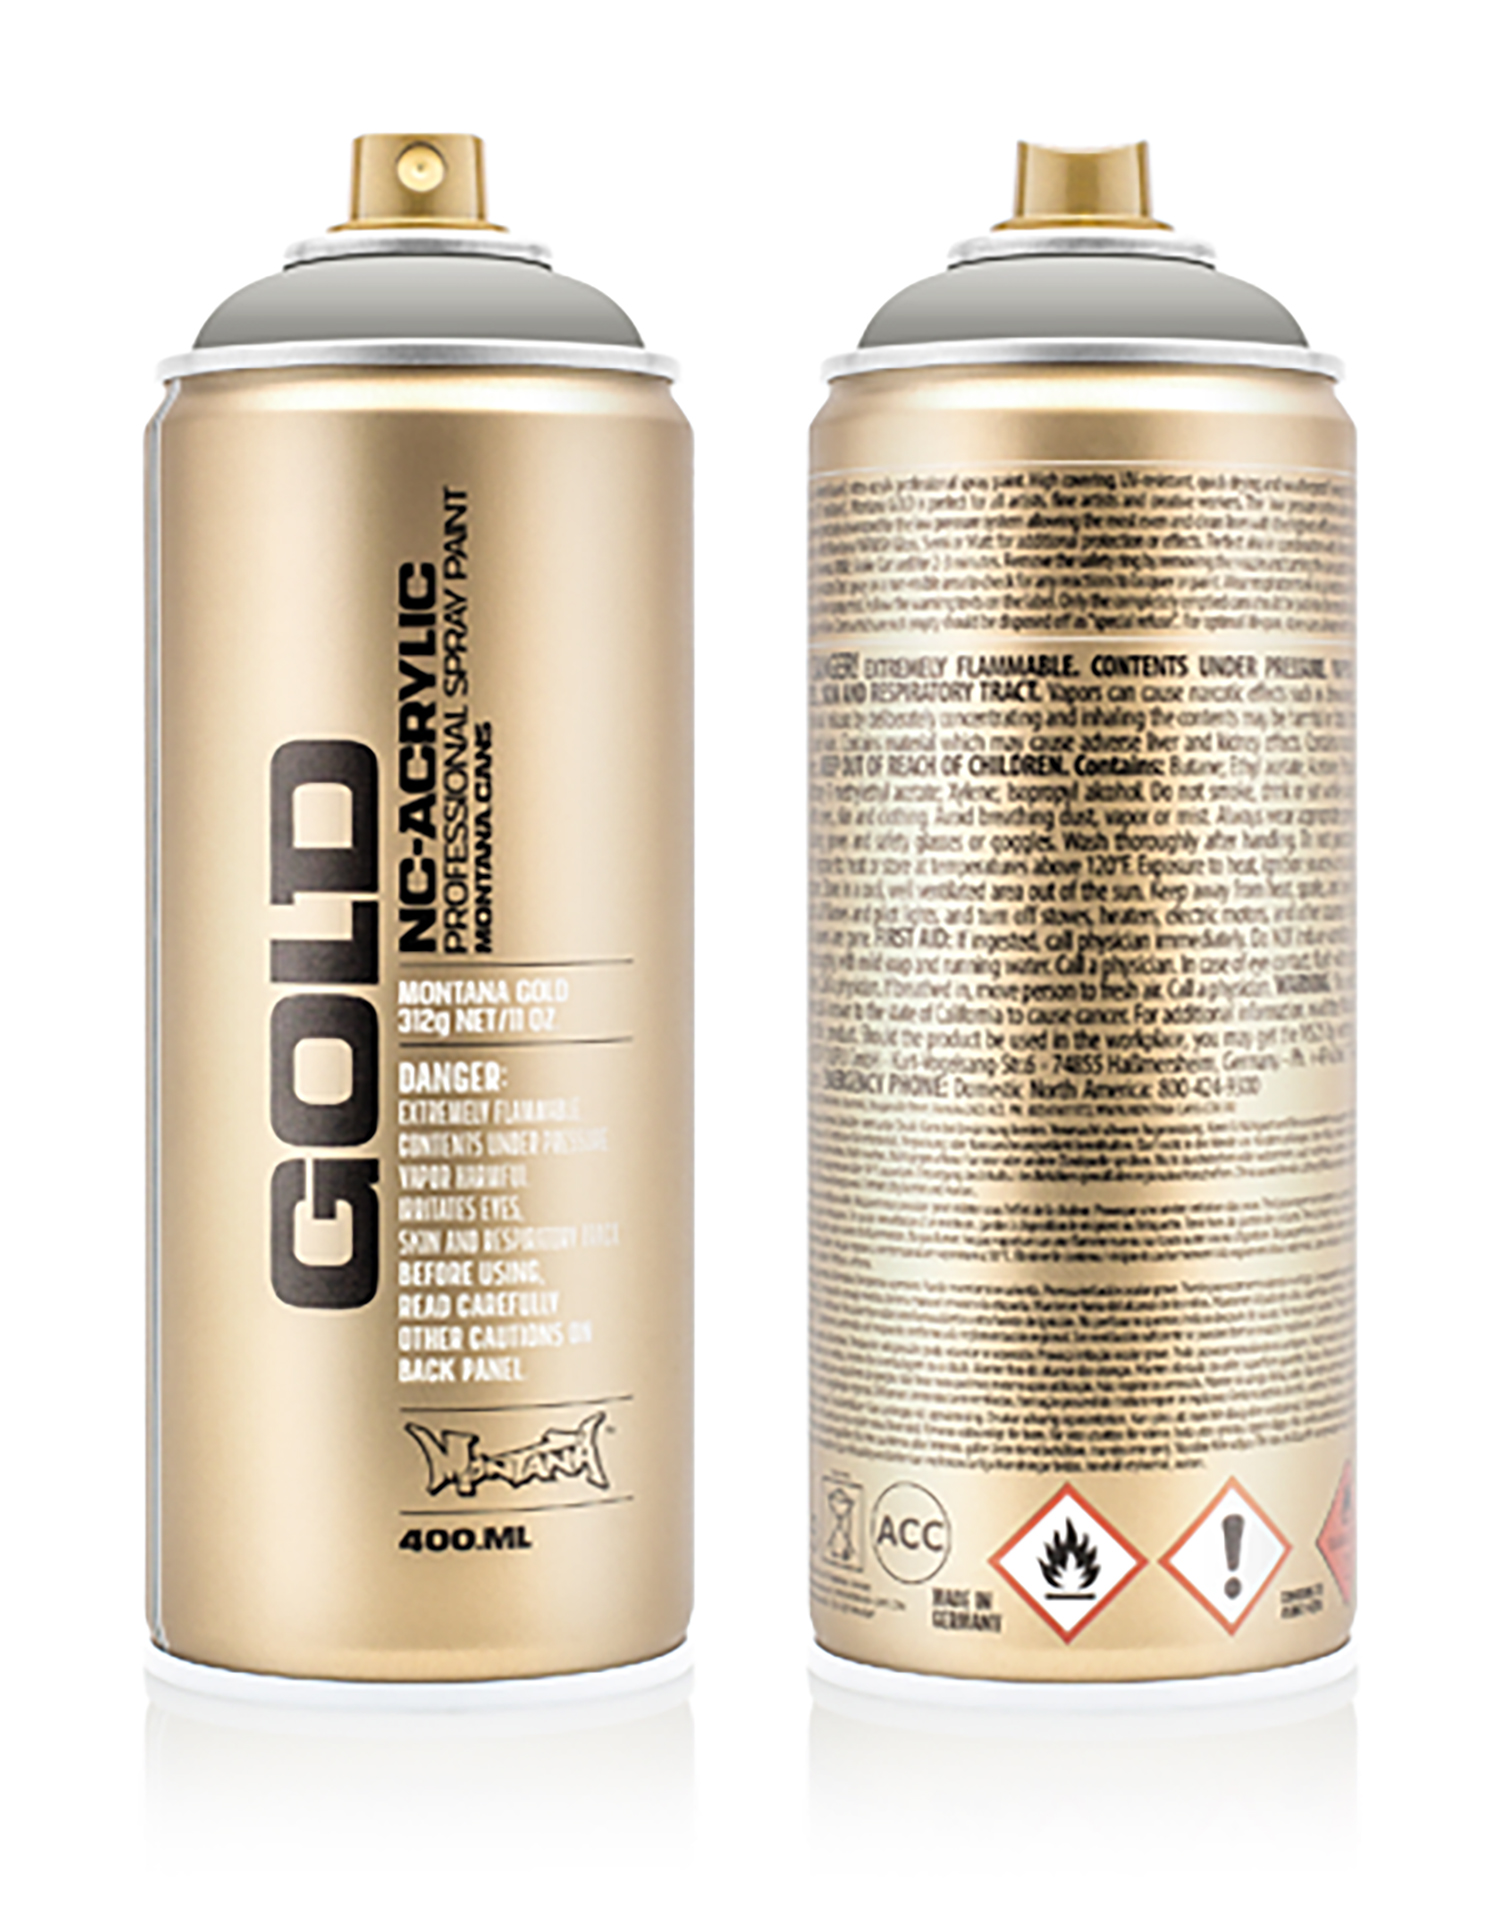 MONTANA-GOLD-SPRAY-400ML-G-7030